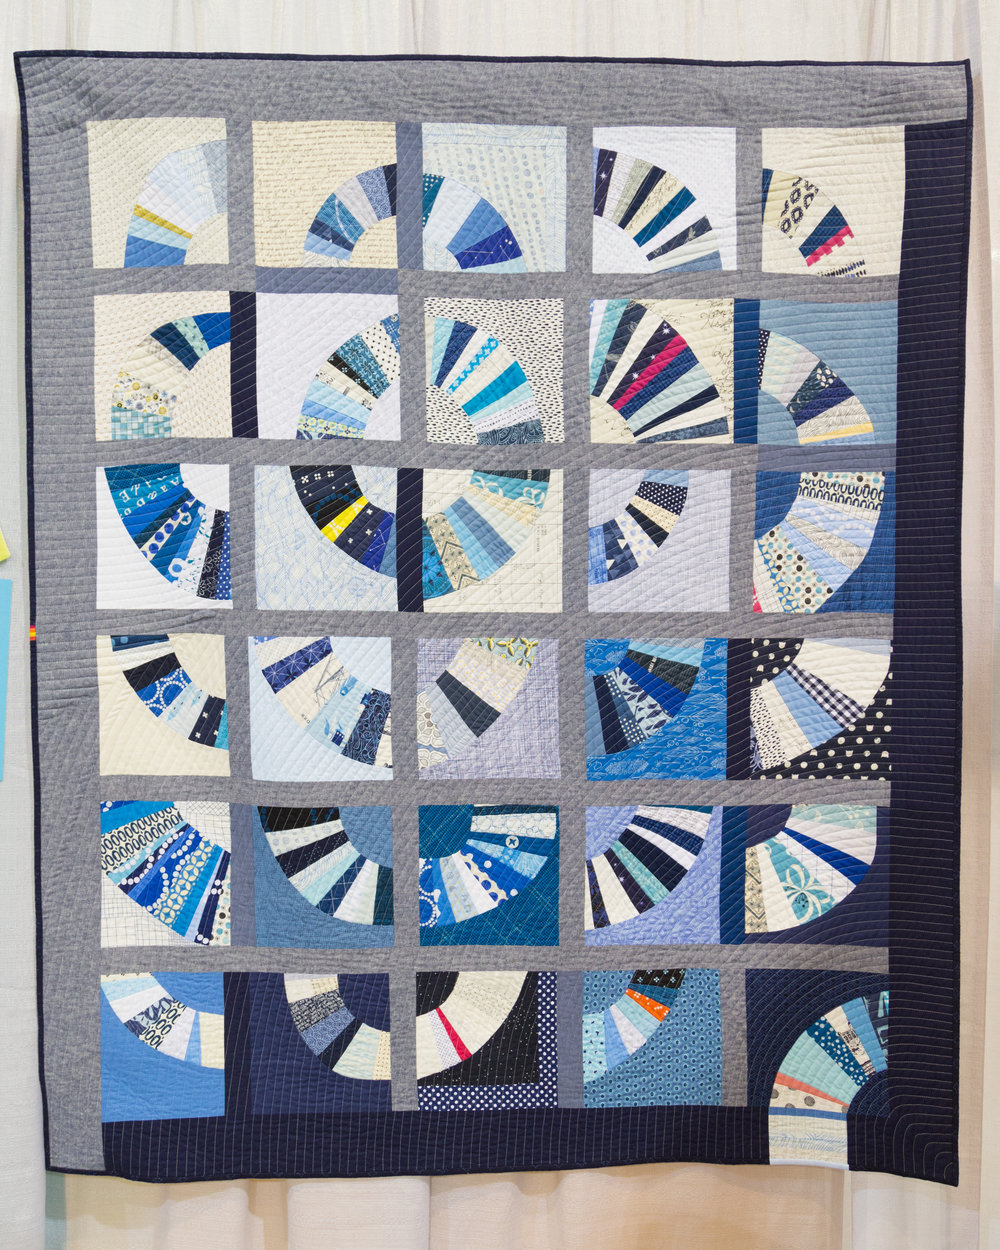 """2nd Place: Blue Blue Electric Blue  52"""" x 61"""" Pieced and quilted by Ara Jane Olufson, Deborah Aspuria, Daisy Auschehoug, Ivy Bagnall, Yeechi Chen, Cat Downs, Mary Gibbons, Rachel Hauser, Allison Schnackenberg, and Jodie Wu. Seattle, WA, United States Seattle Modern Quilt Guild"""